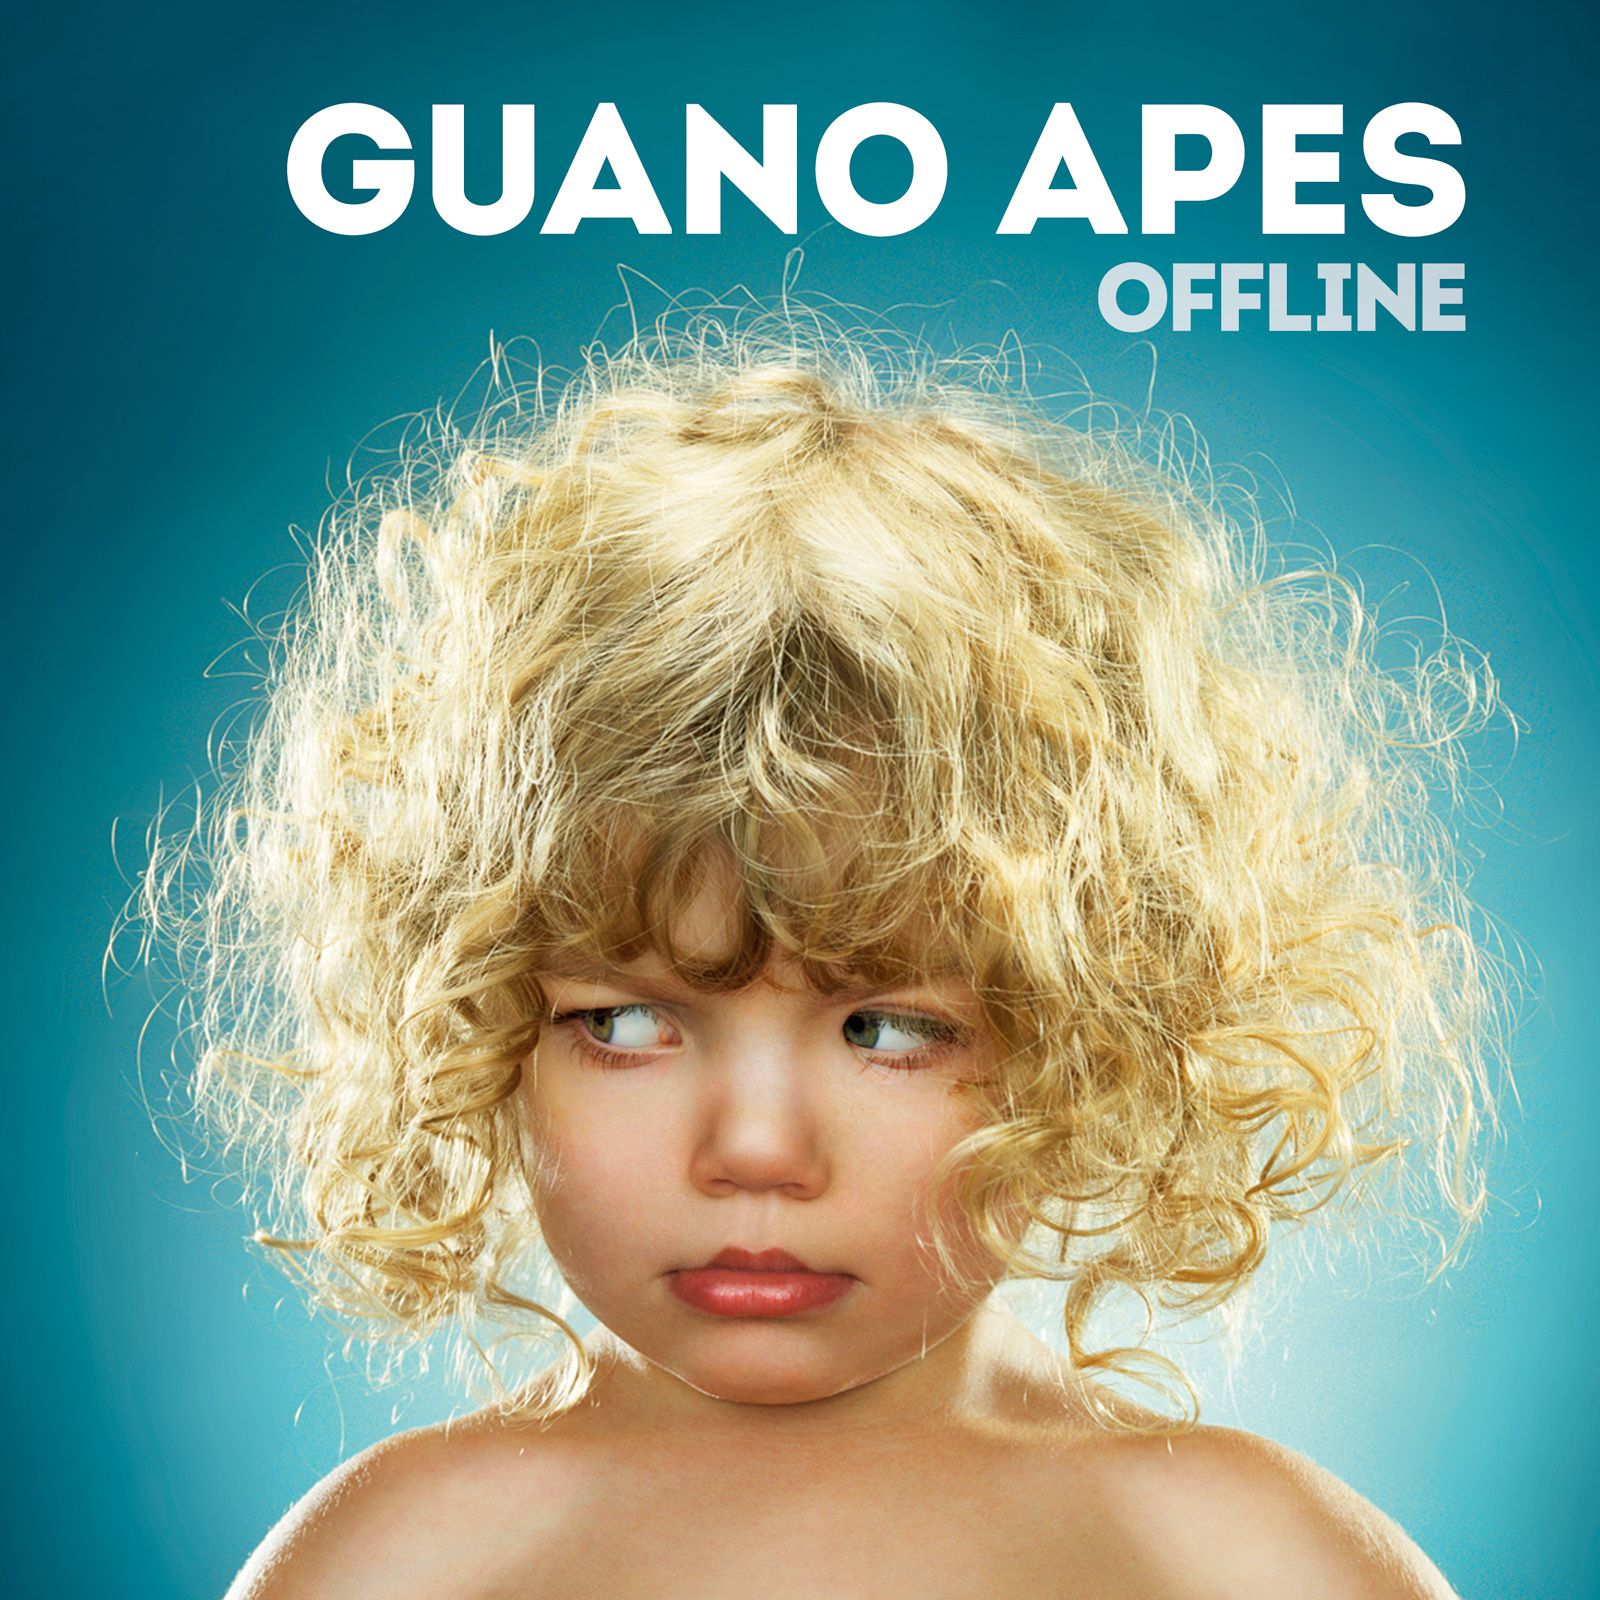 New album from the GUANO APES